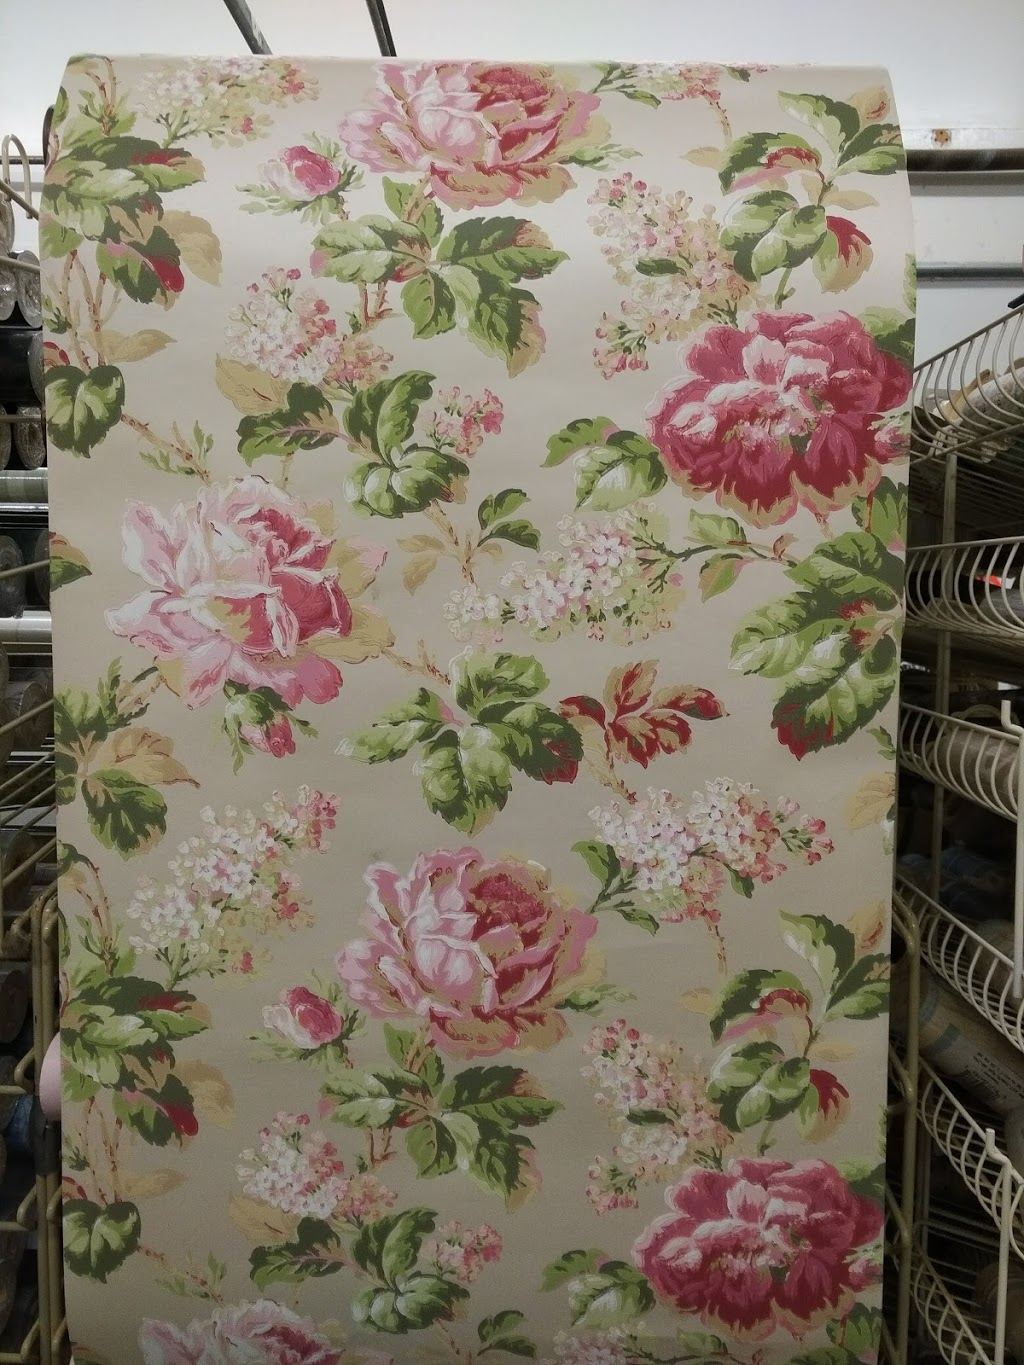 Discount Wallpaper House | home goods store | 8170 Concession Rd 3, Listowel, ON N4W 3G8, Canada | 5196385741 OR +1 519-638-5741